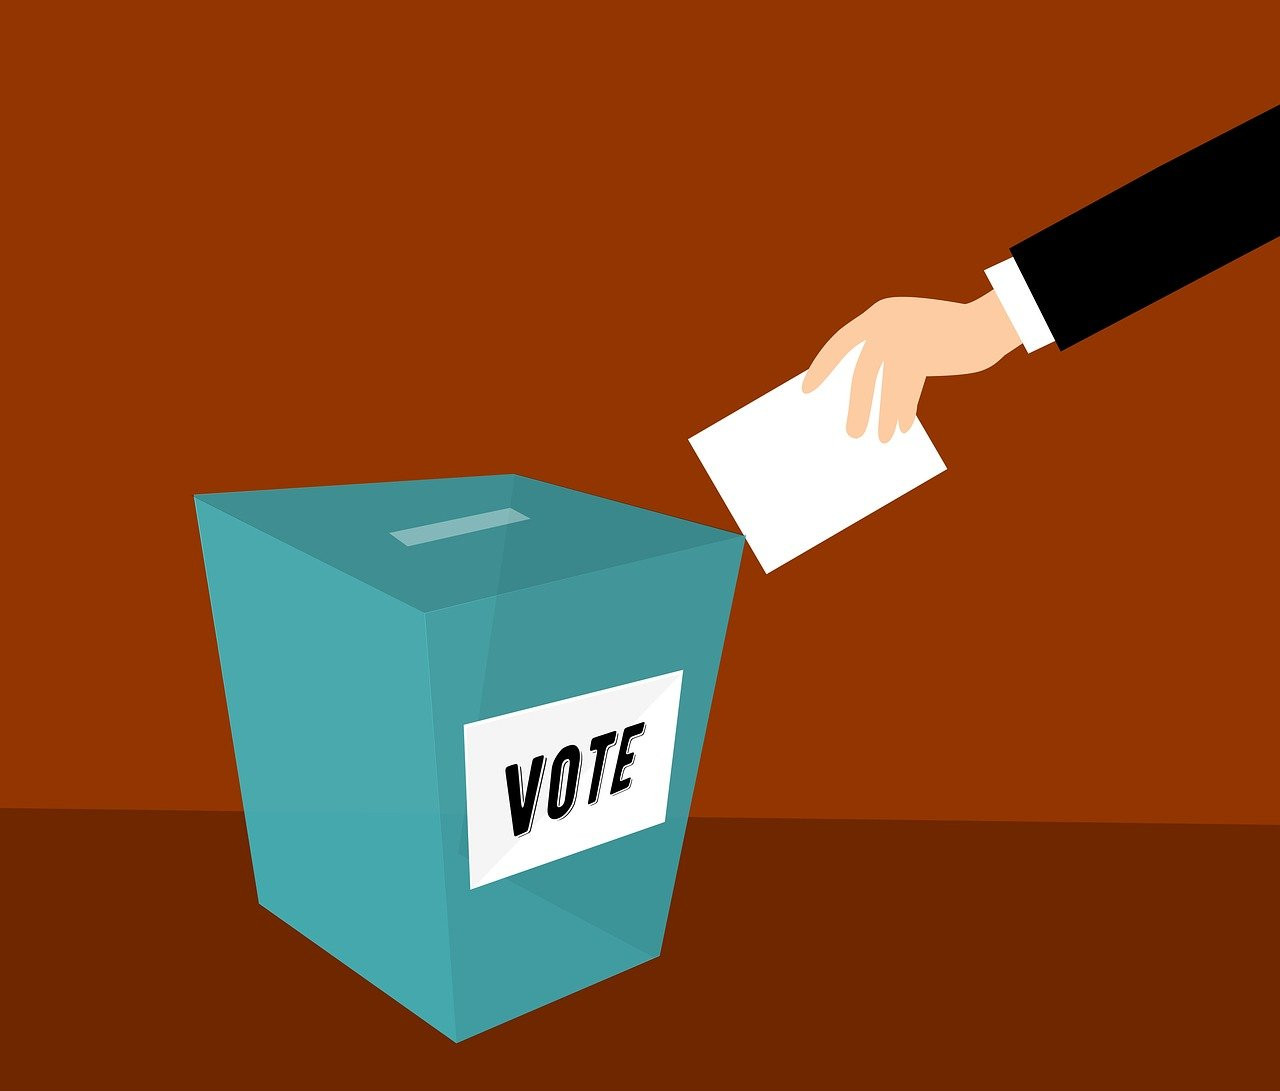 OPINION: A County Line Disenfranchises Voters & New Voices | Jedynak